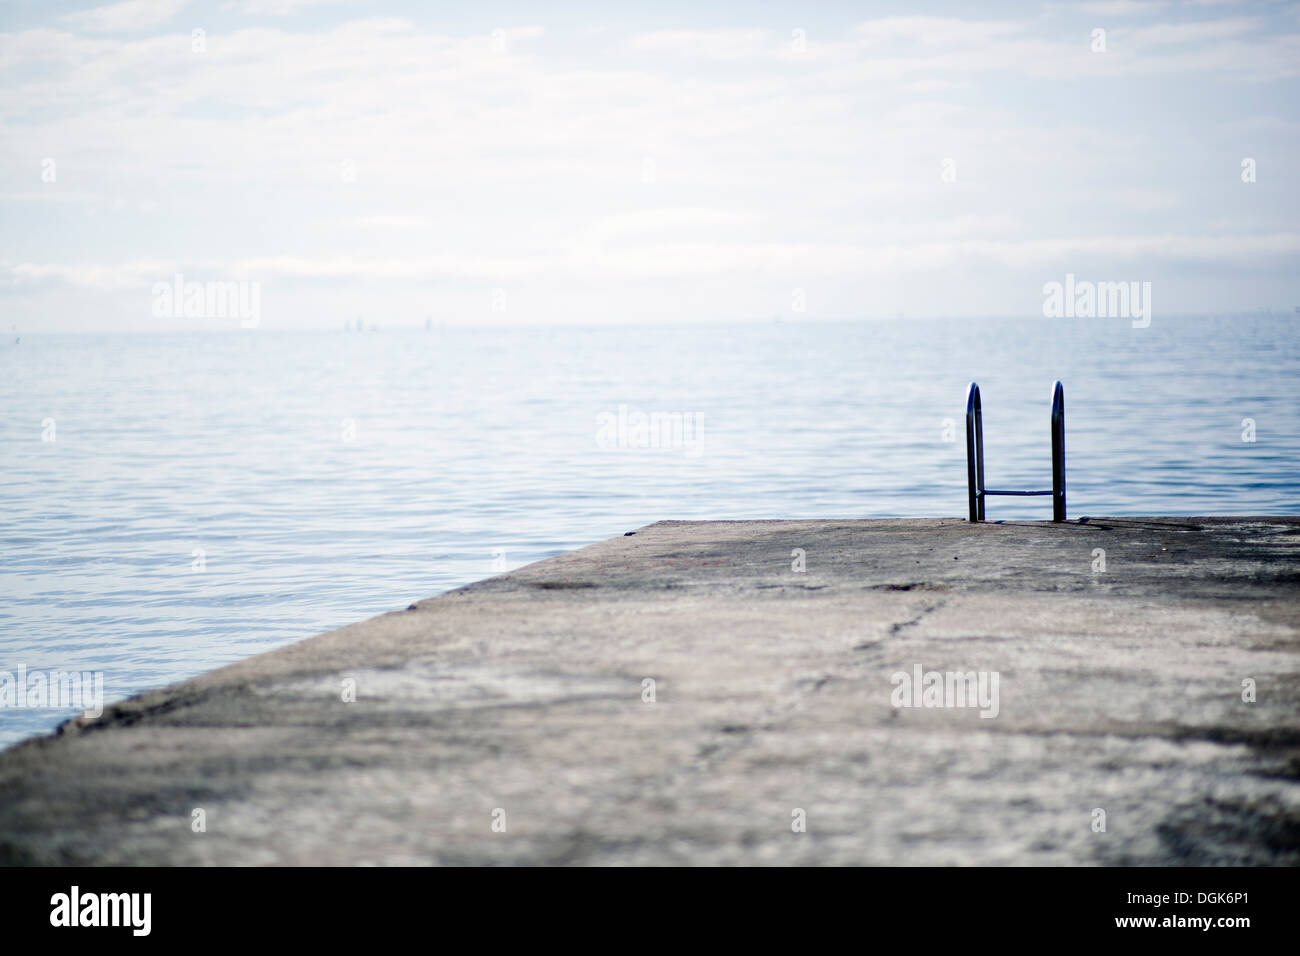 Jetty going in to the sea - Stock Image